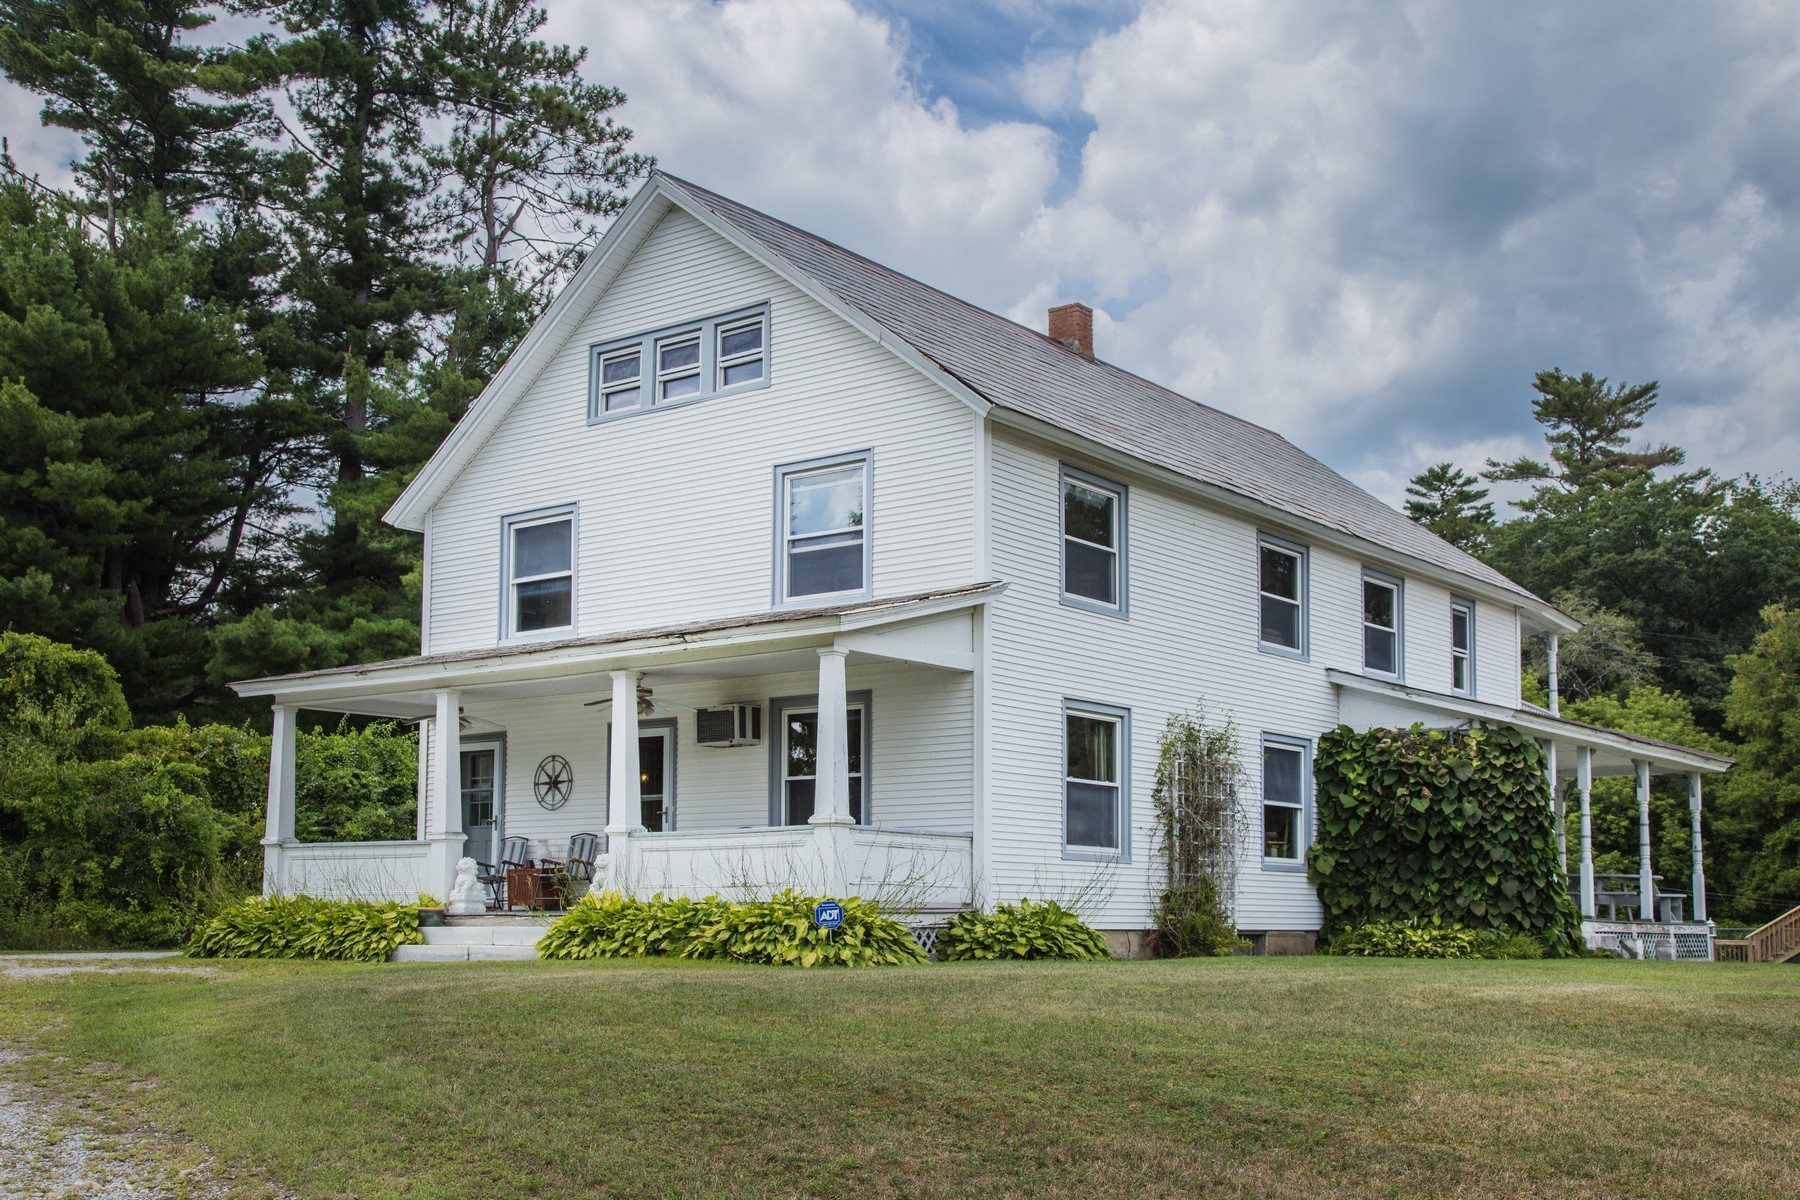 Single Family Homes for Sale at 13-15 Shedd Place, Rutland City 13-15 Shedd Pl Rutland, Vermont 05701 United States